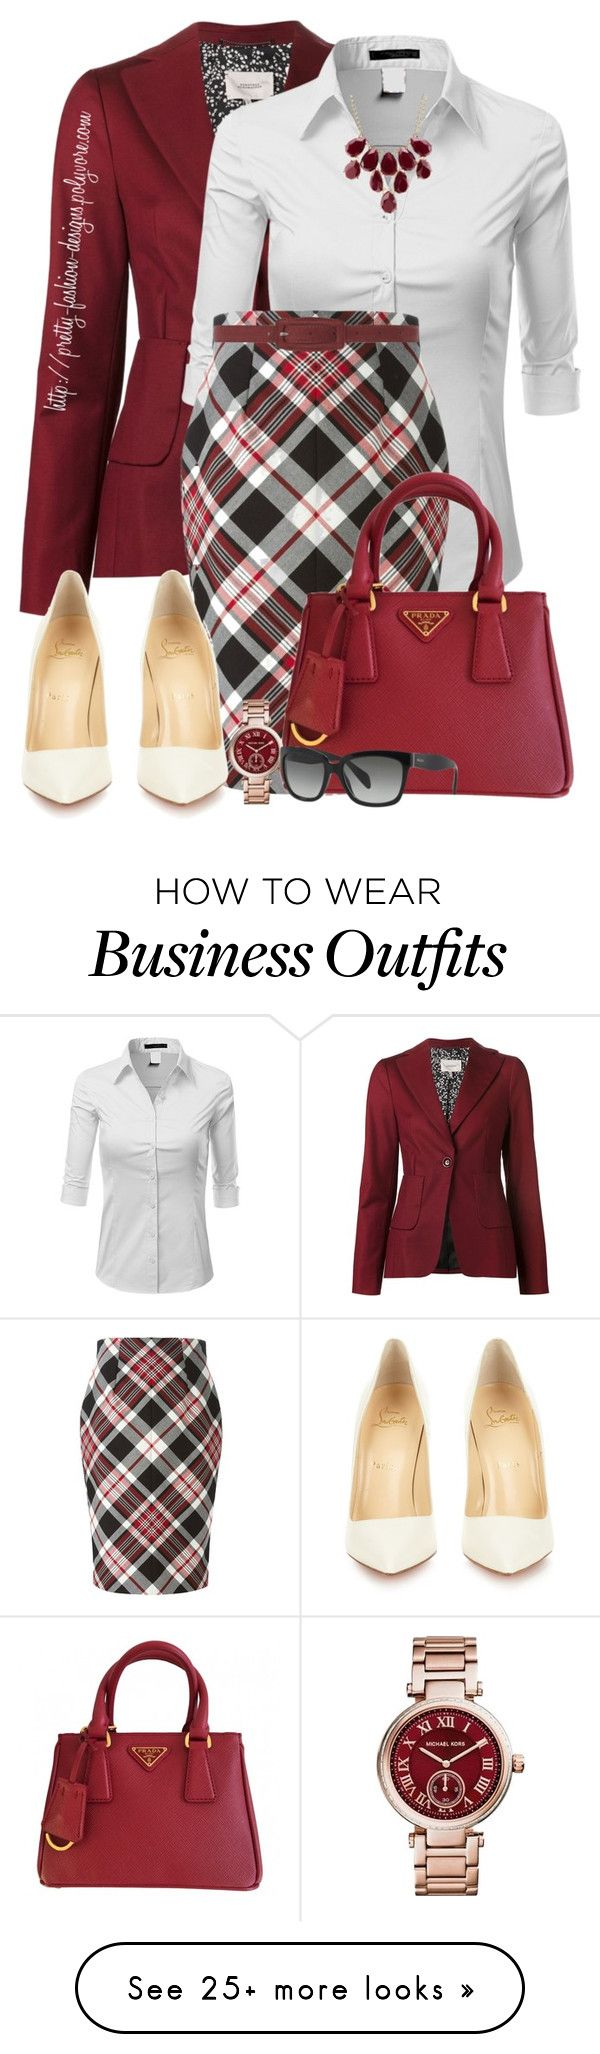 """~ Work Wear ~"" by pretty-fashion-designs on Polyvore featuring Dorothee Schumacher, Doublju, Alexander McQueen, Dorothy Perkins, Charlotte Russe, Christian Louboutin, Prada, Michael Kors, women's clothing and women"